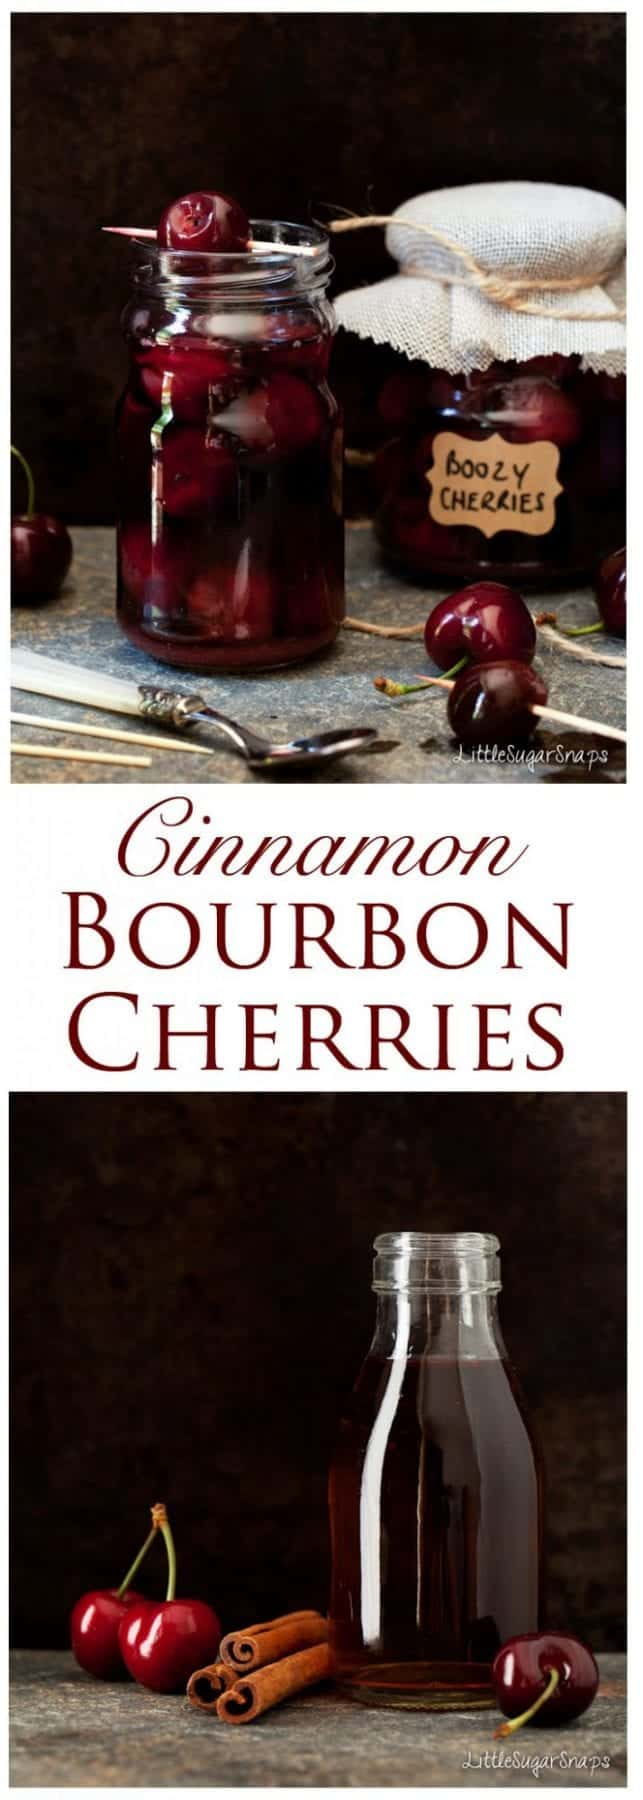 Cinnamon Bourbon Cherries: fresh, pitted cherries cooked briefly in sweetened bourbon and gently infused with cinnamon spice.Great as dessert, as a cocktail garnish or as an impressive edible gift